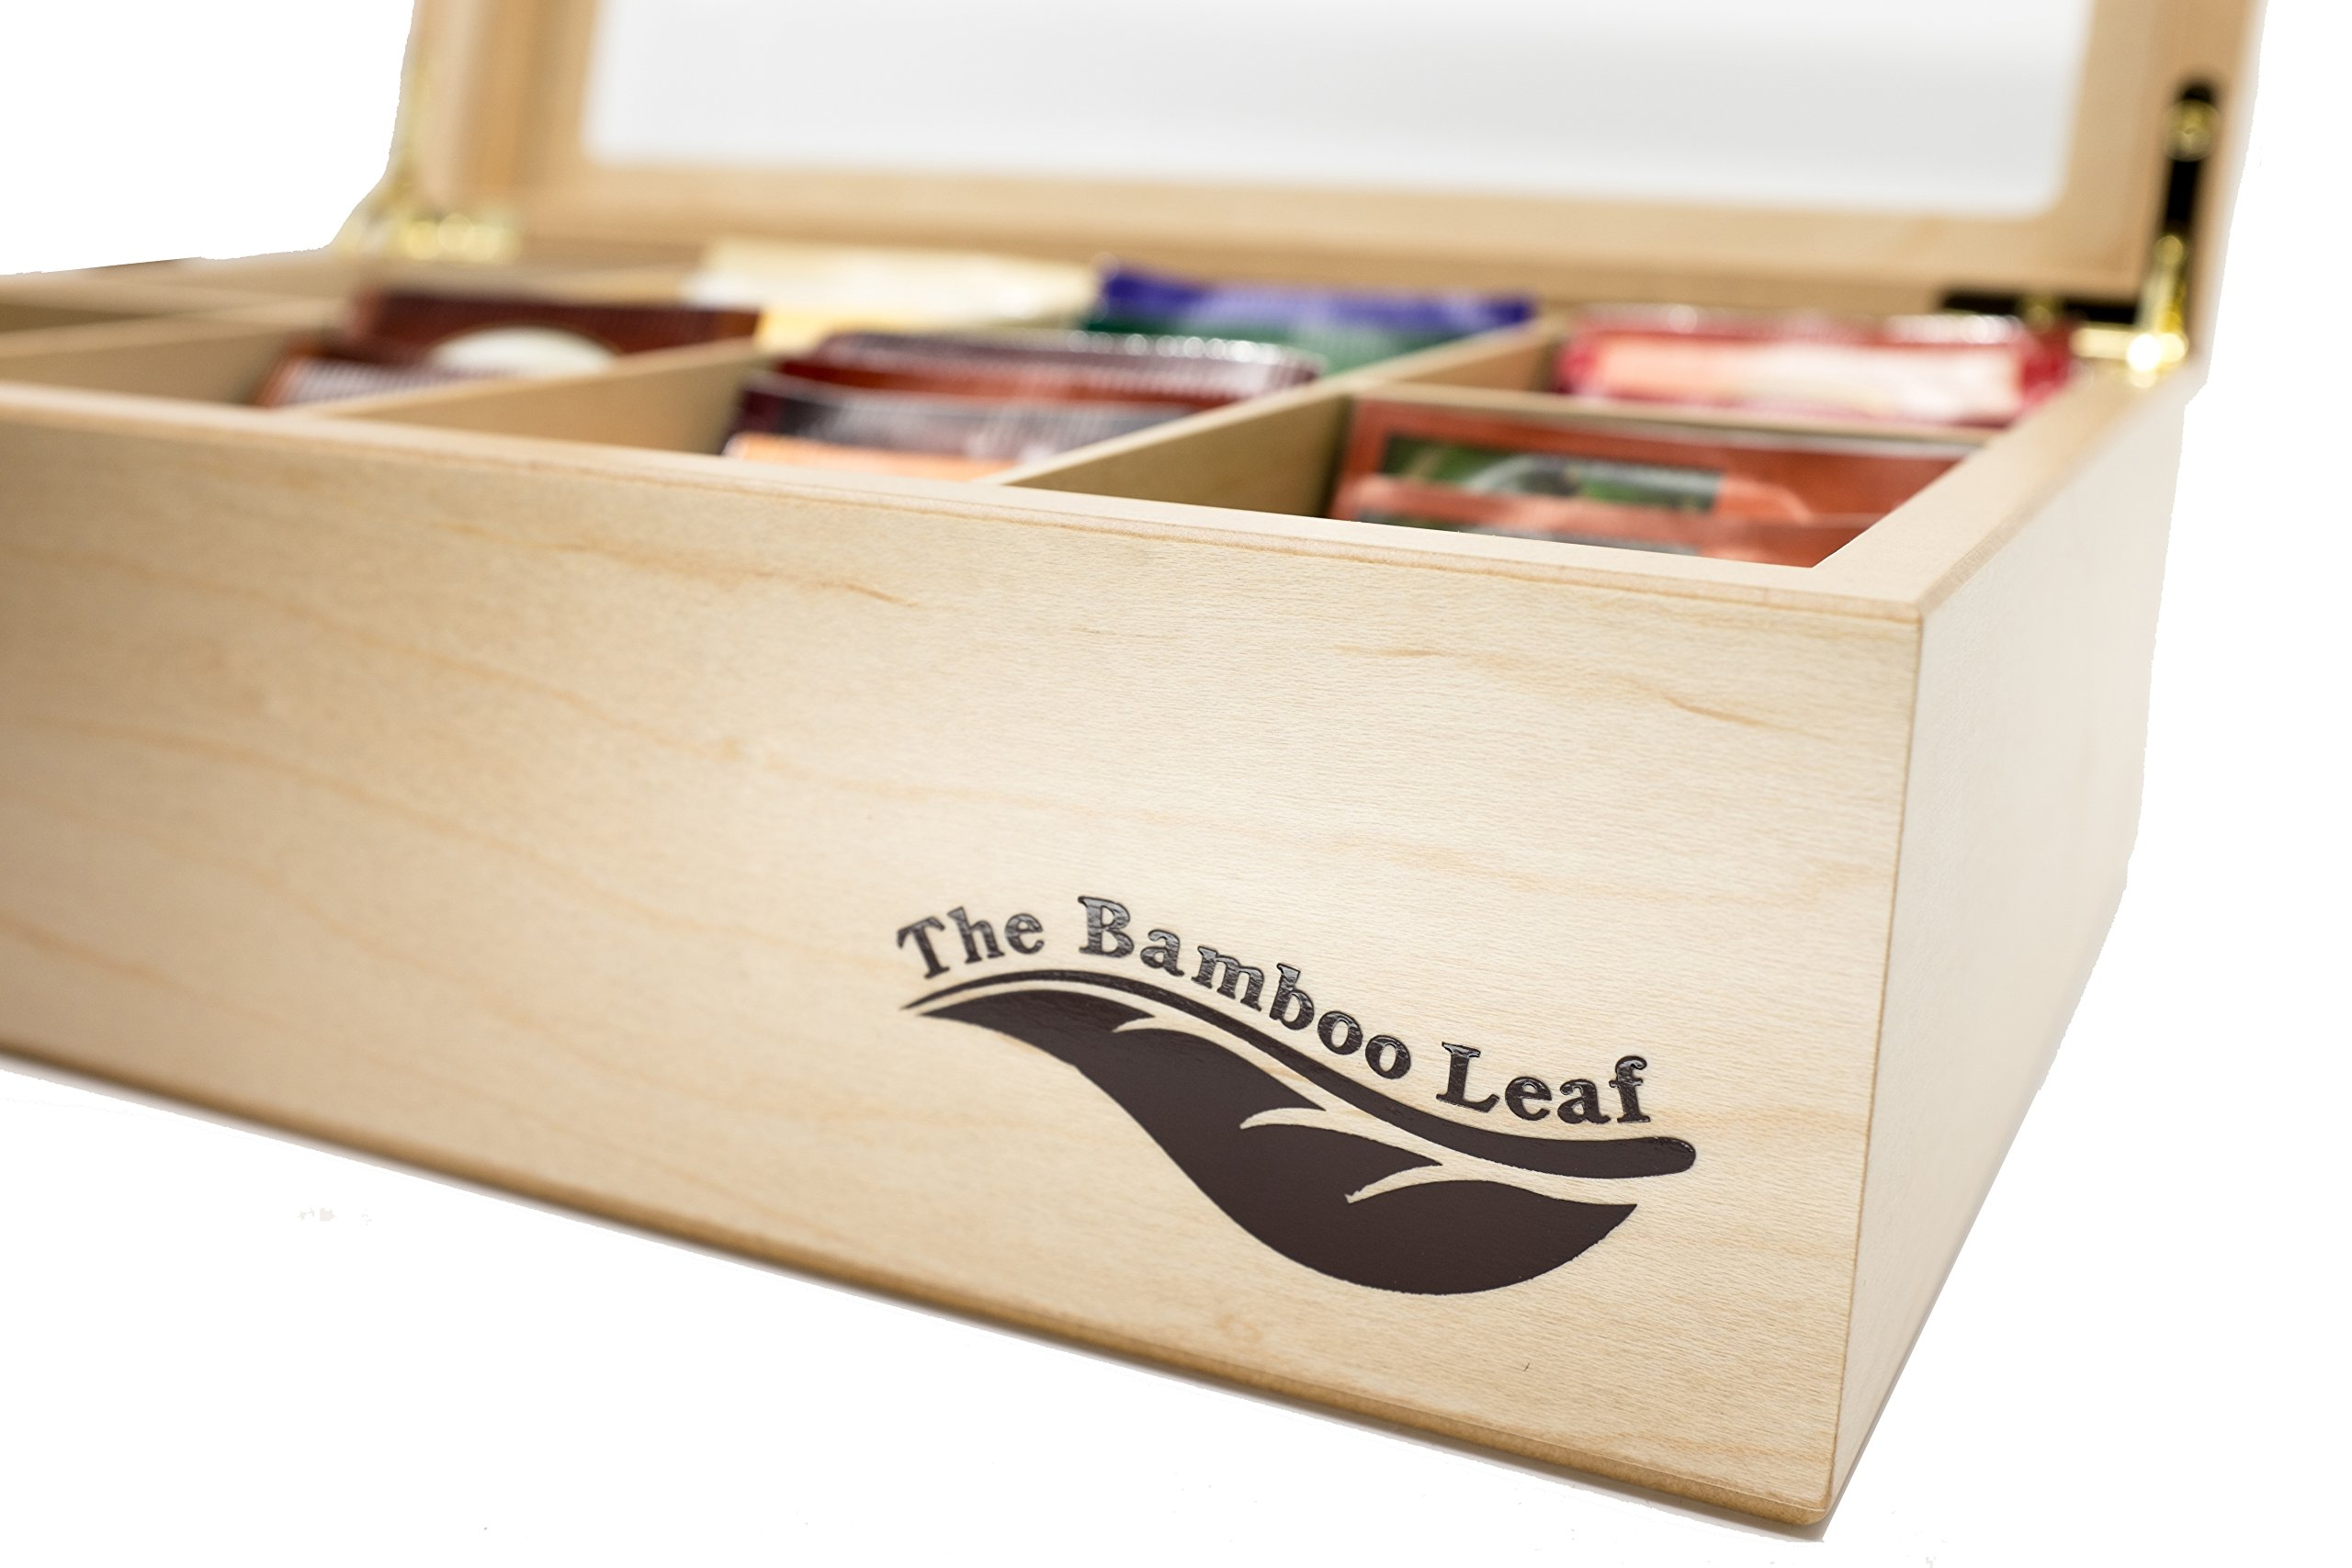 The Bamboo Leaf Luxury Wooden Tea BoxStorage Chest, 8 Compartments w/Glass Window (Natural) by The Bamboo Leaf (Image #2)